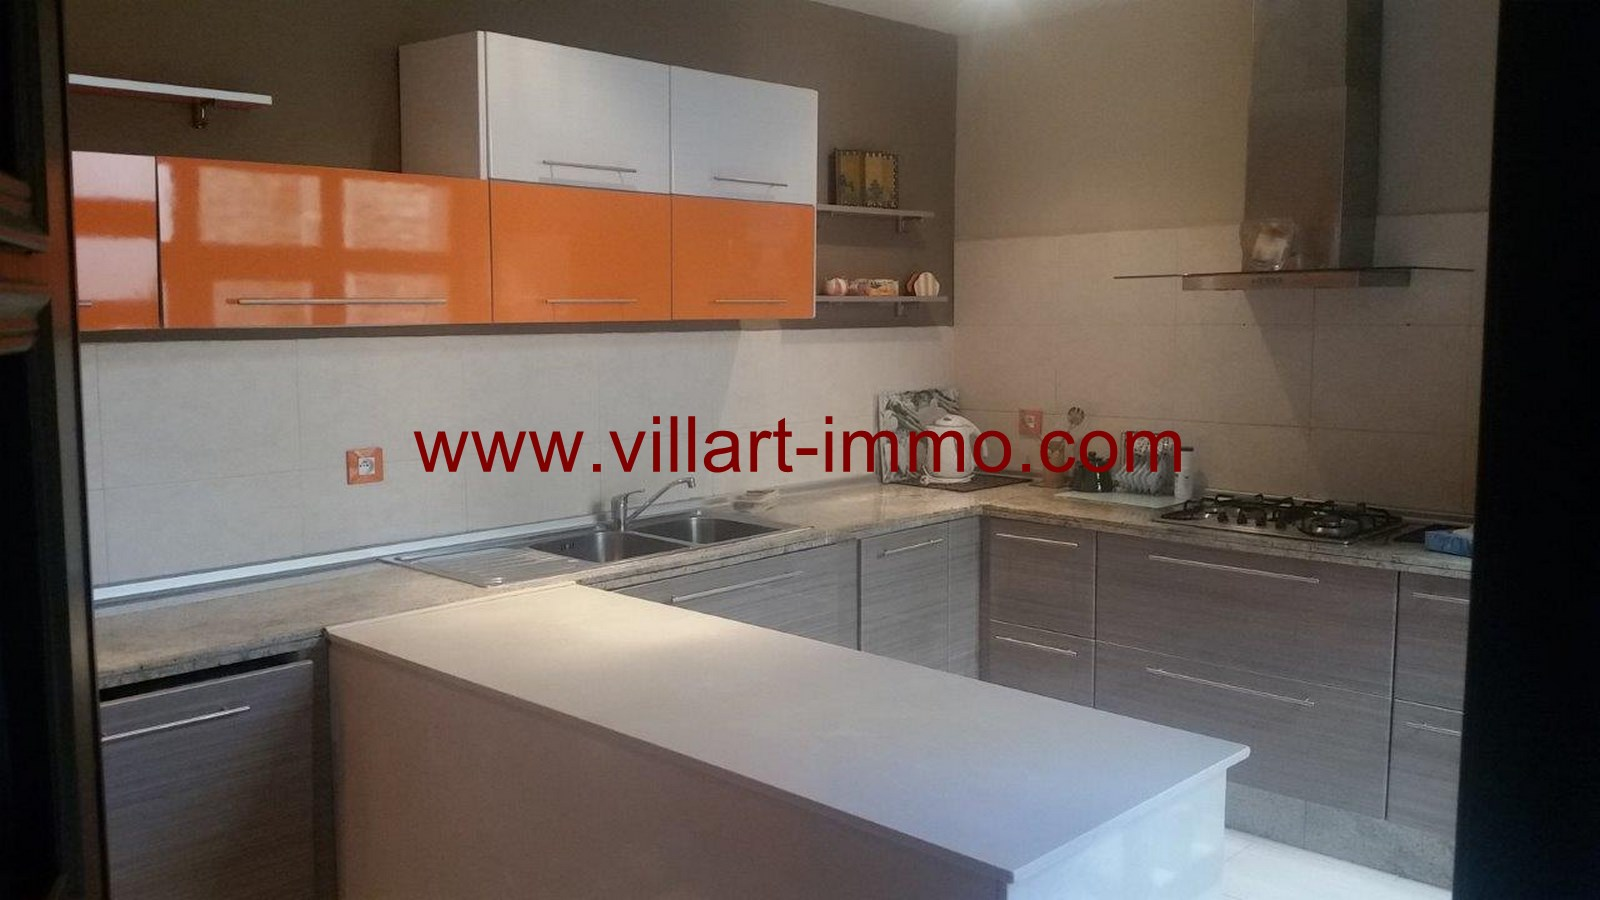 7-To Let-Villa-Furnished-Tangier-kitchen-LSTV986-Villart-Immo